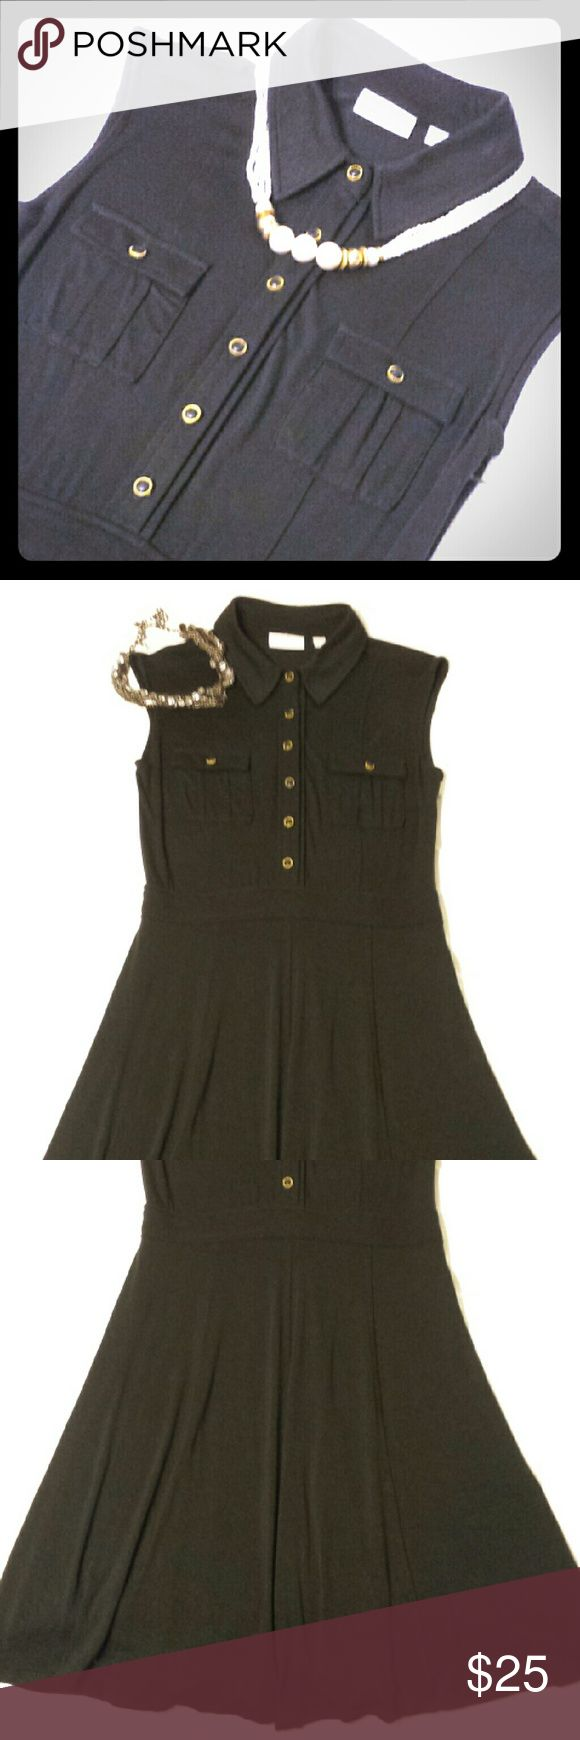 New York &Company ..🌷Can be Bundled 🌷 Cute GUC black dress with Gold button details. New York & Company Dresses